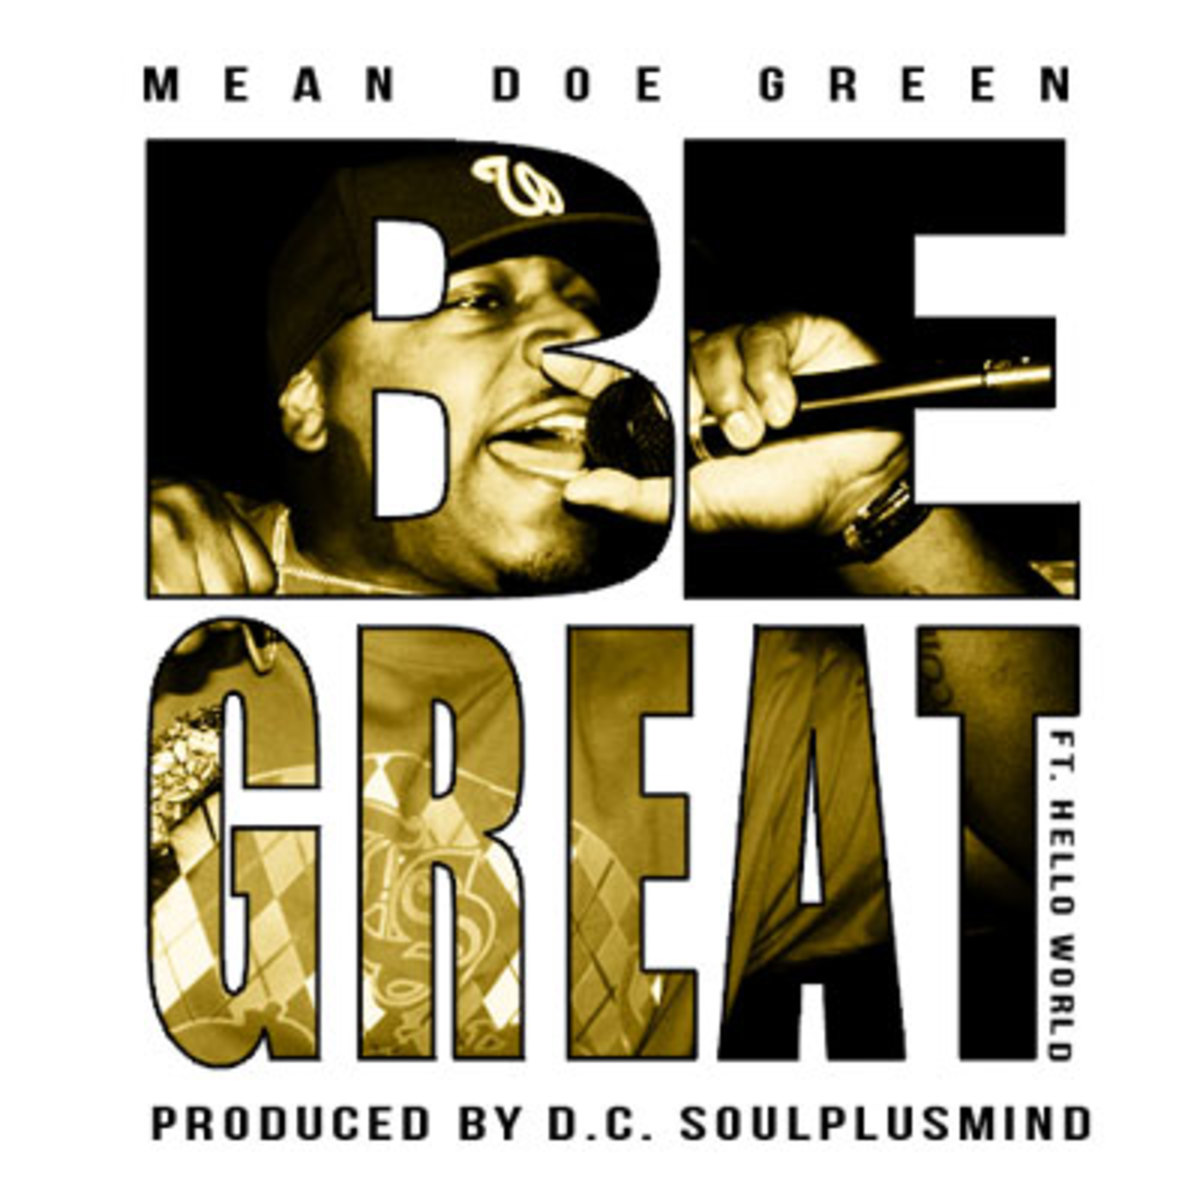 meandoegreen-begreat.jpg